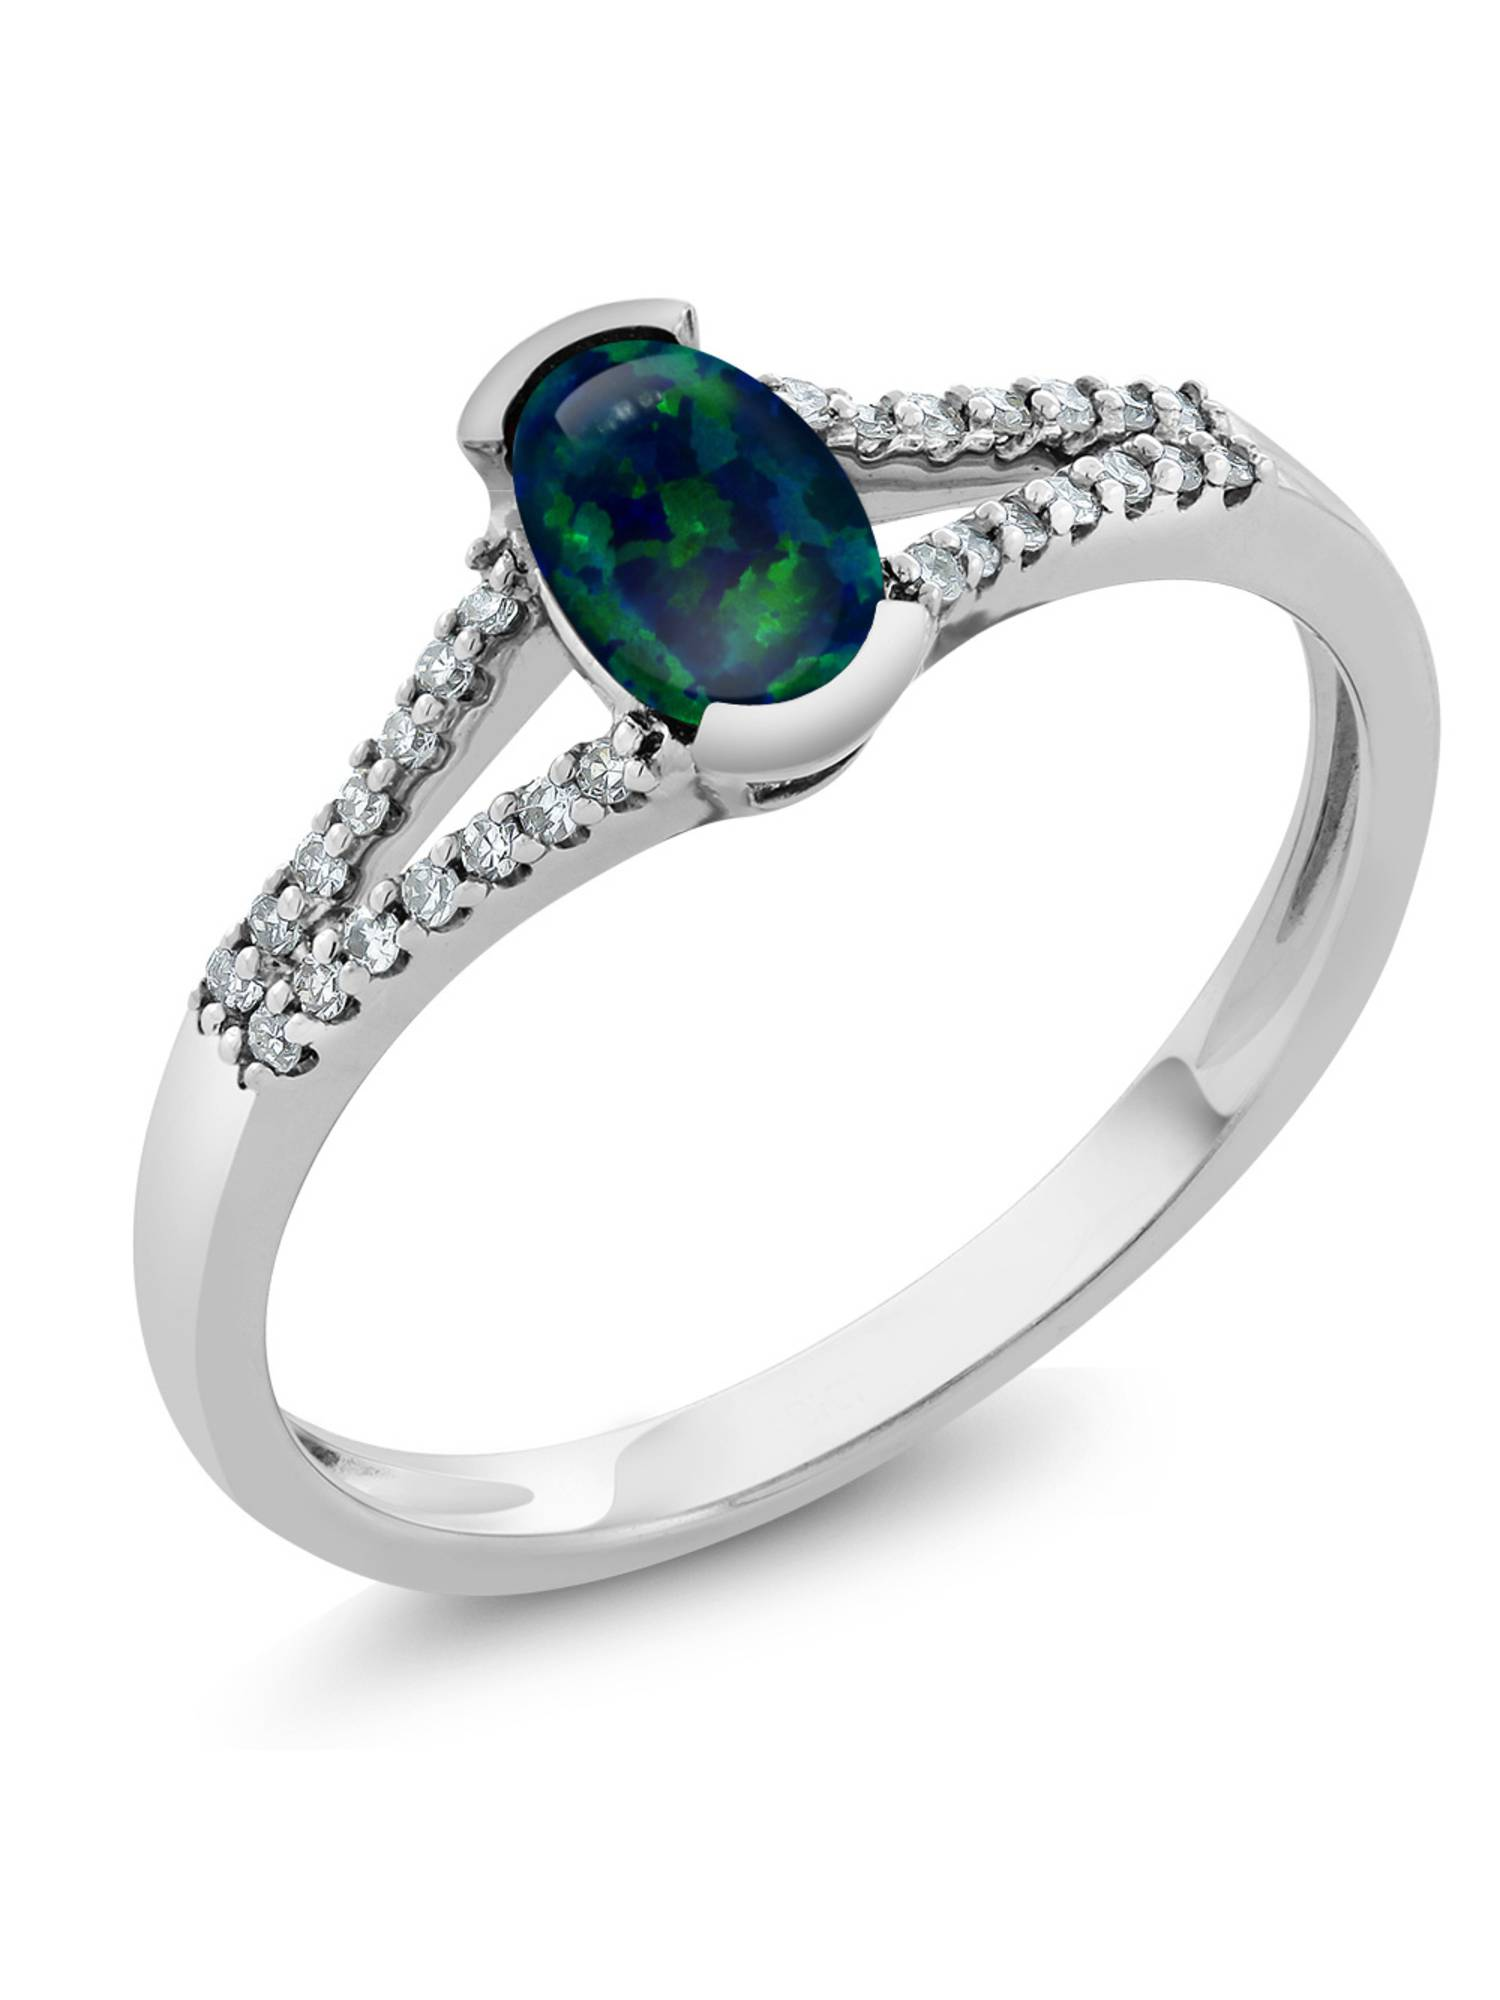 0.50 Ct Oval Cabochon Green Simulated Opal and Diamond 10K White Gold Ring by